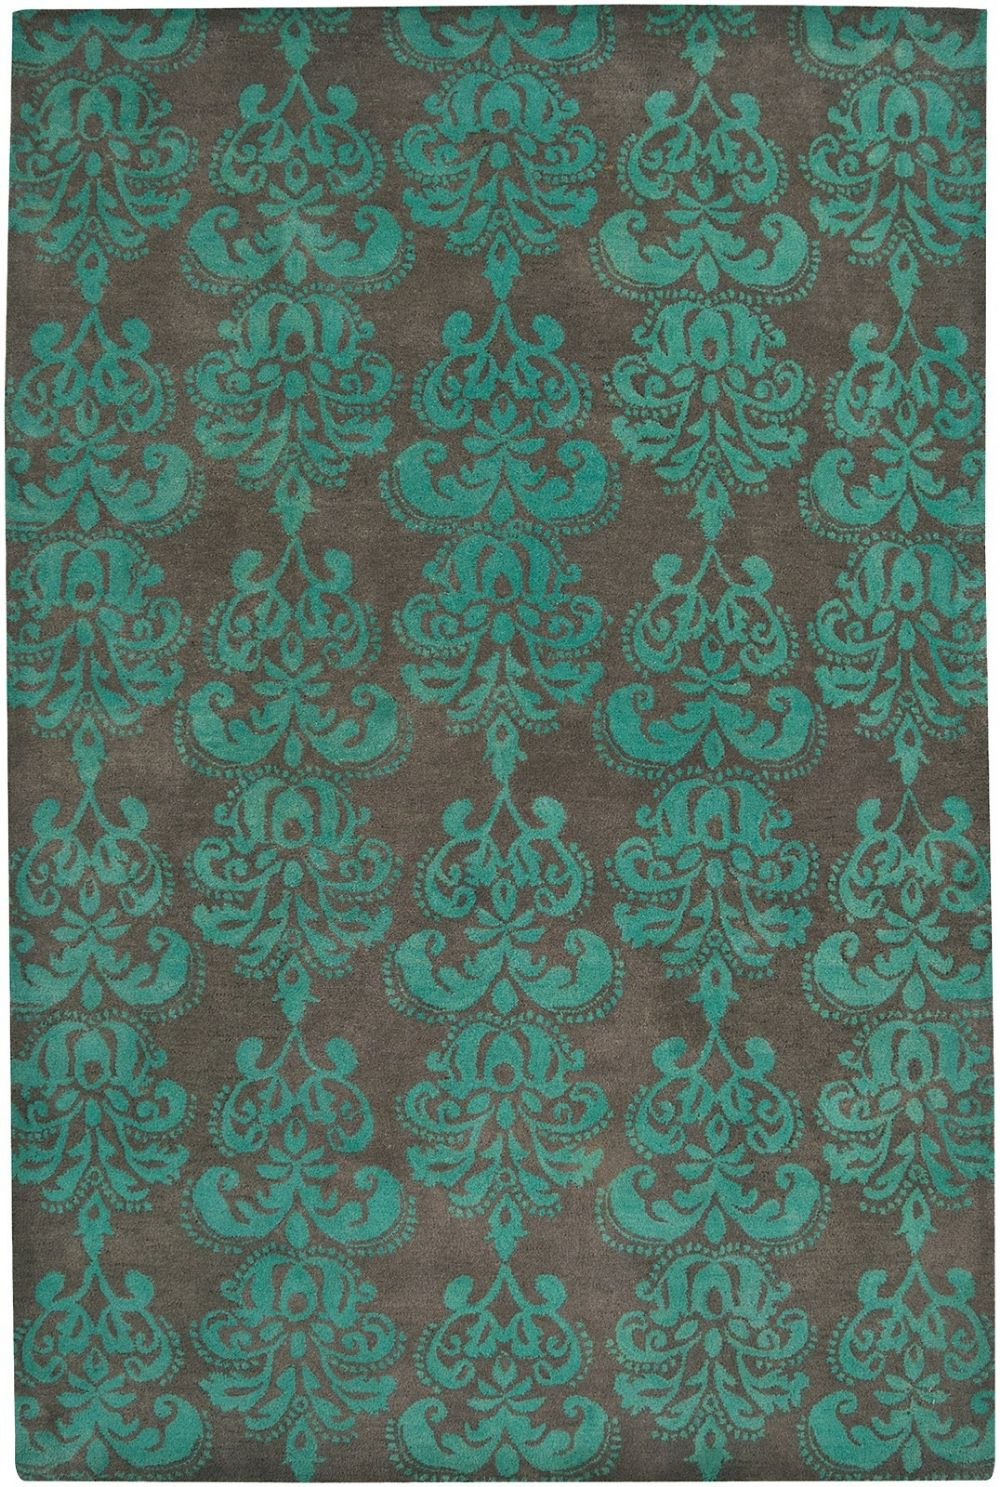 amer soho transitional area rug collection